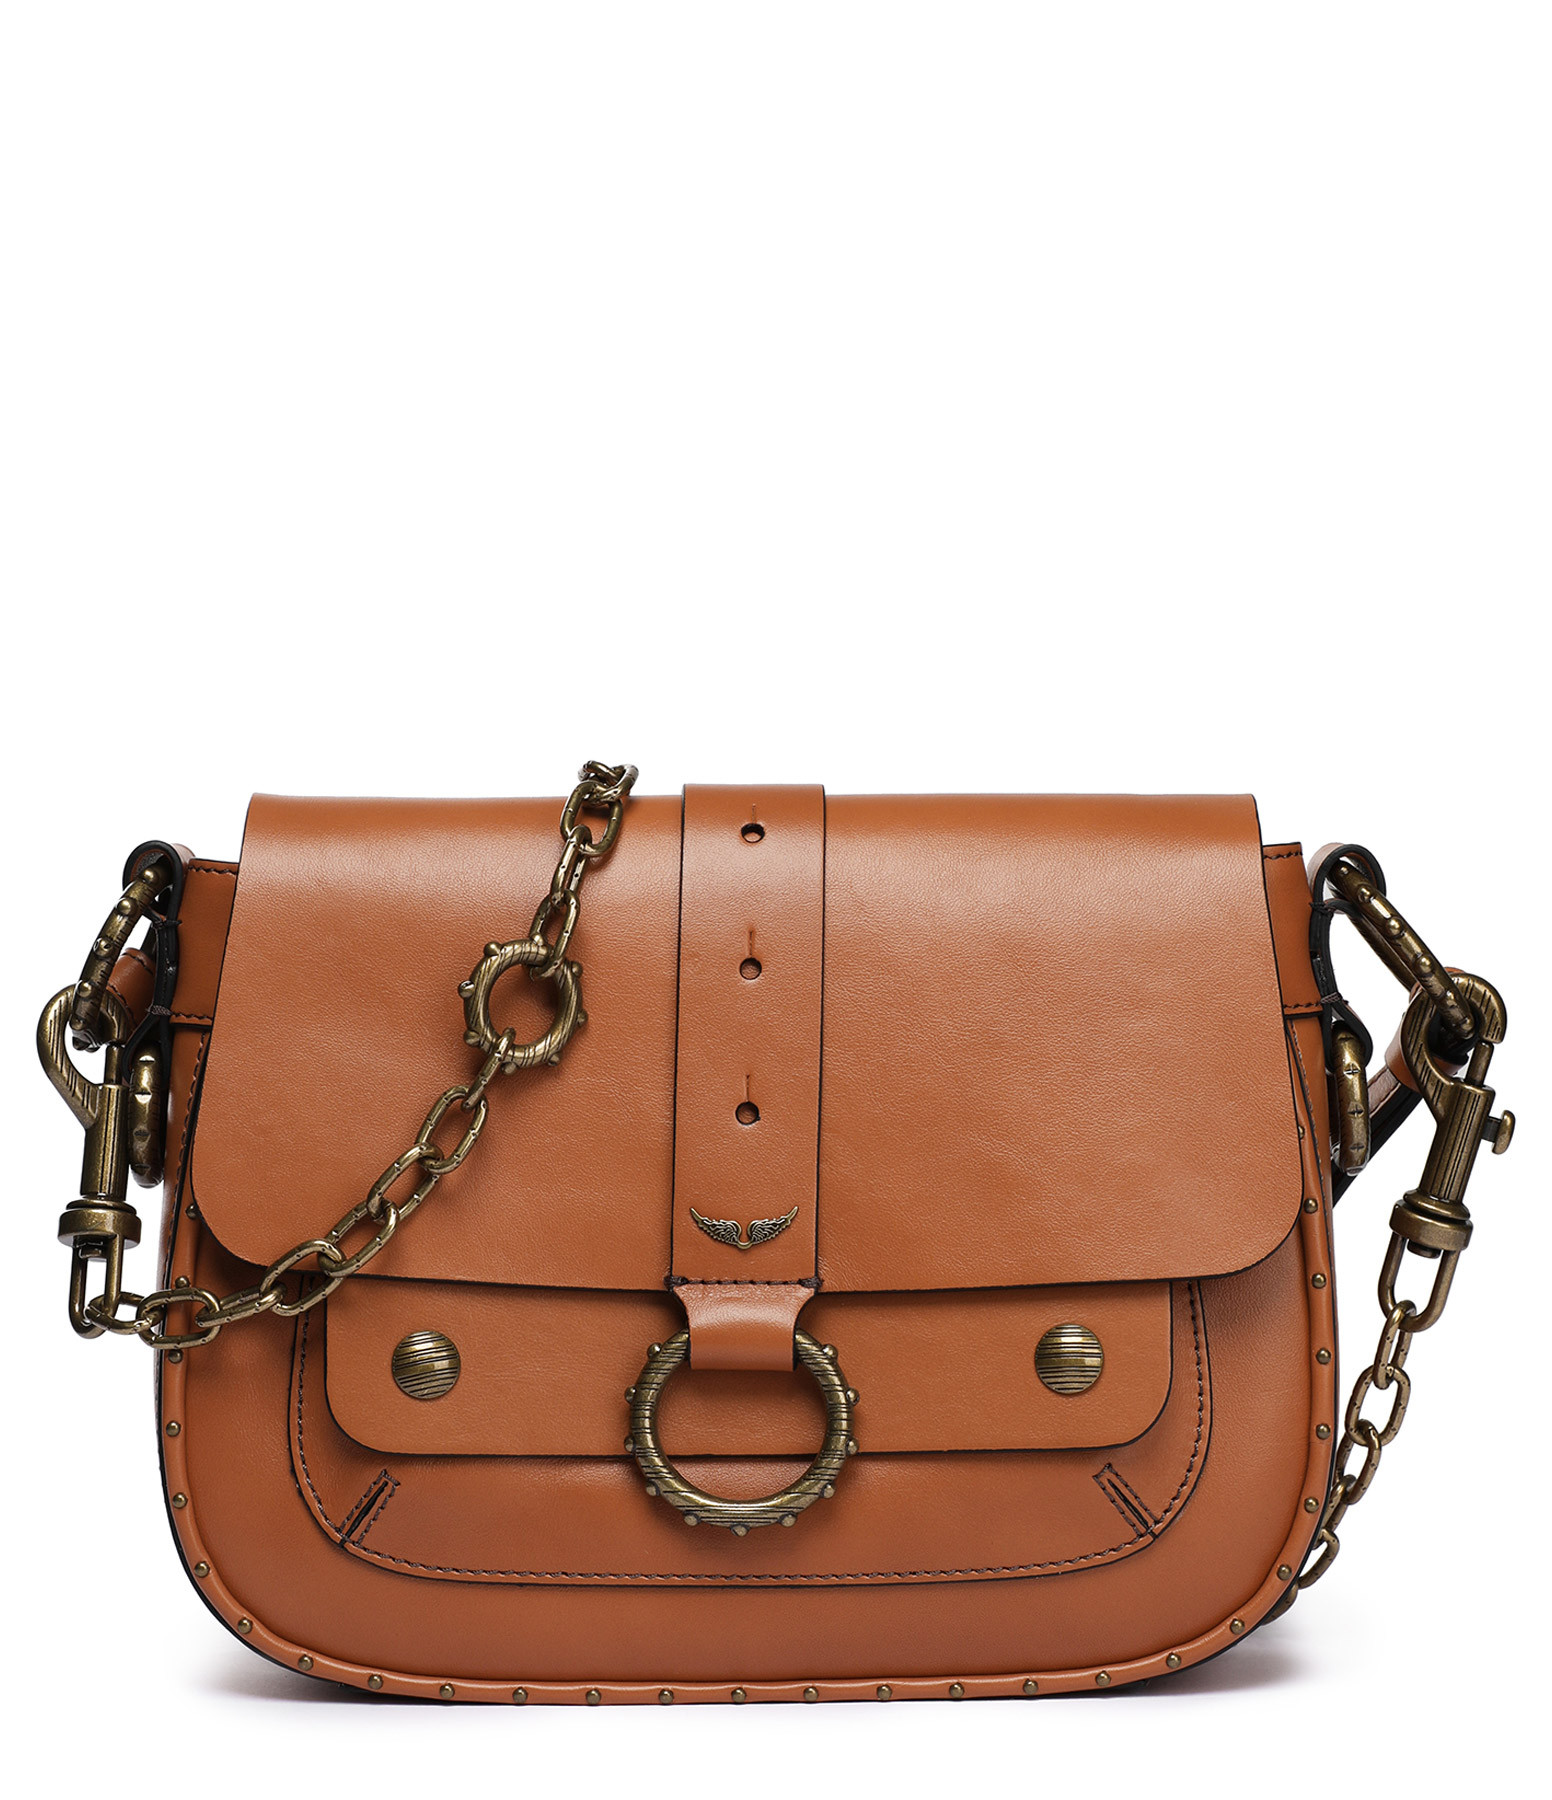 ZADIG & VOLTAIRE - Sac Smooth Cuir Marron, Collection Kate Moss